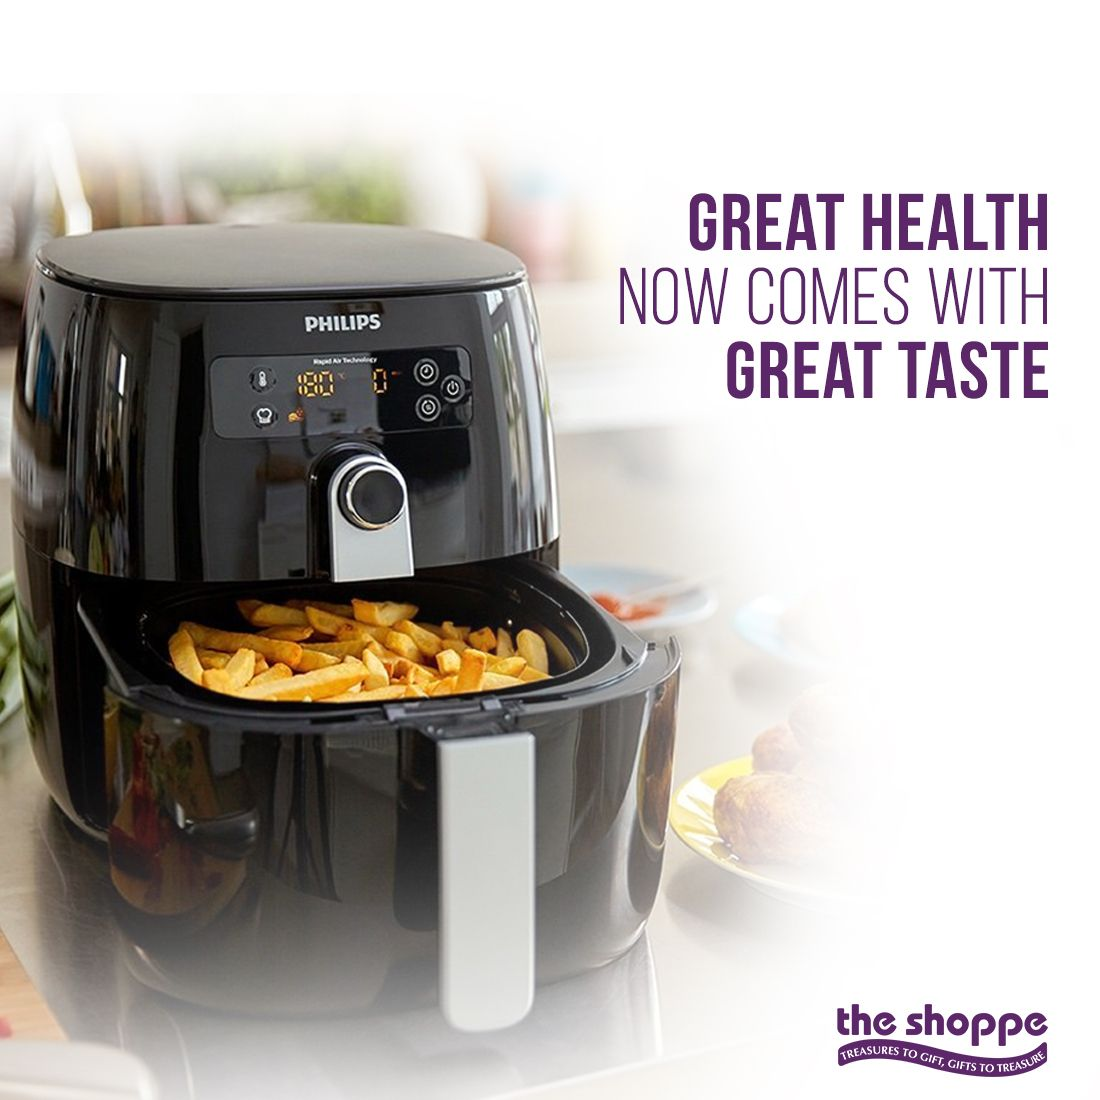 The Shoppe has a wide range of cooking appliances to shop